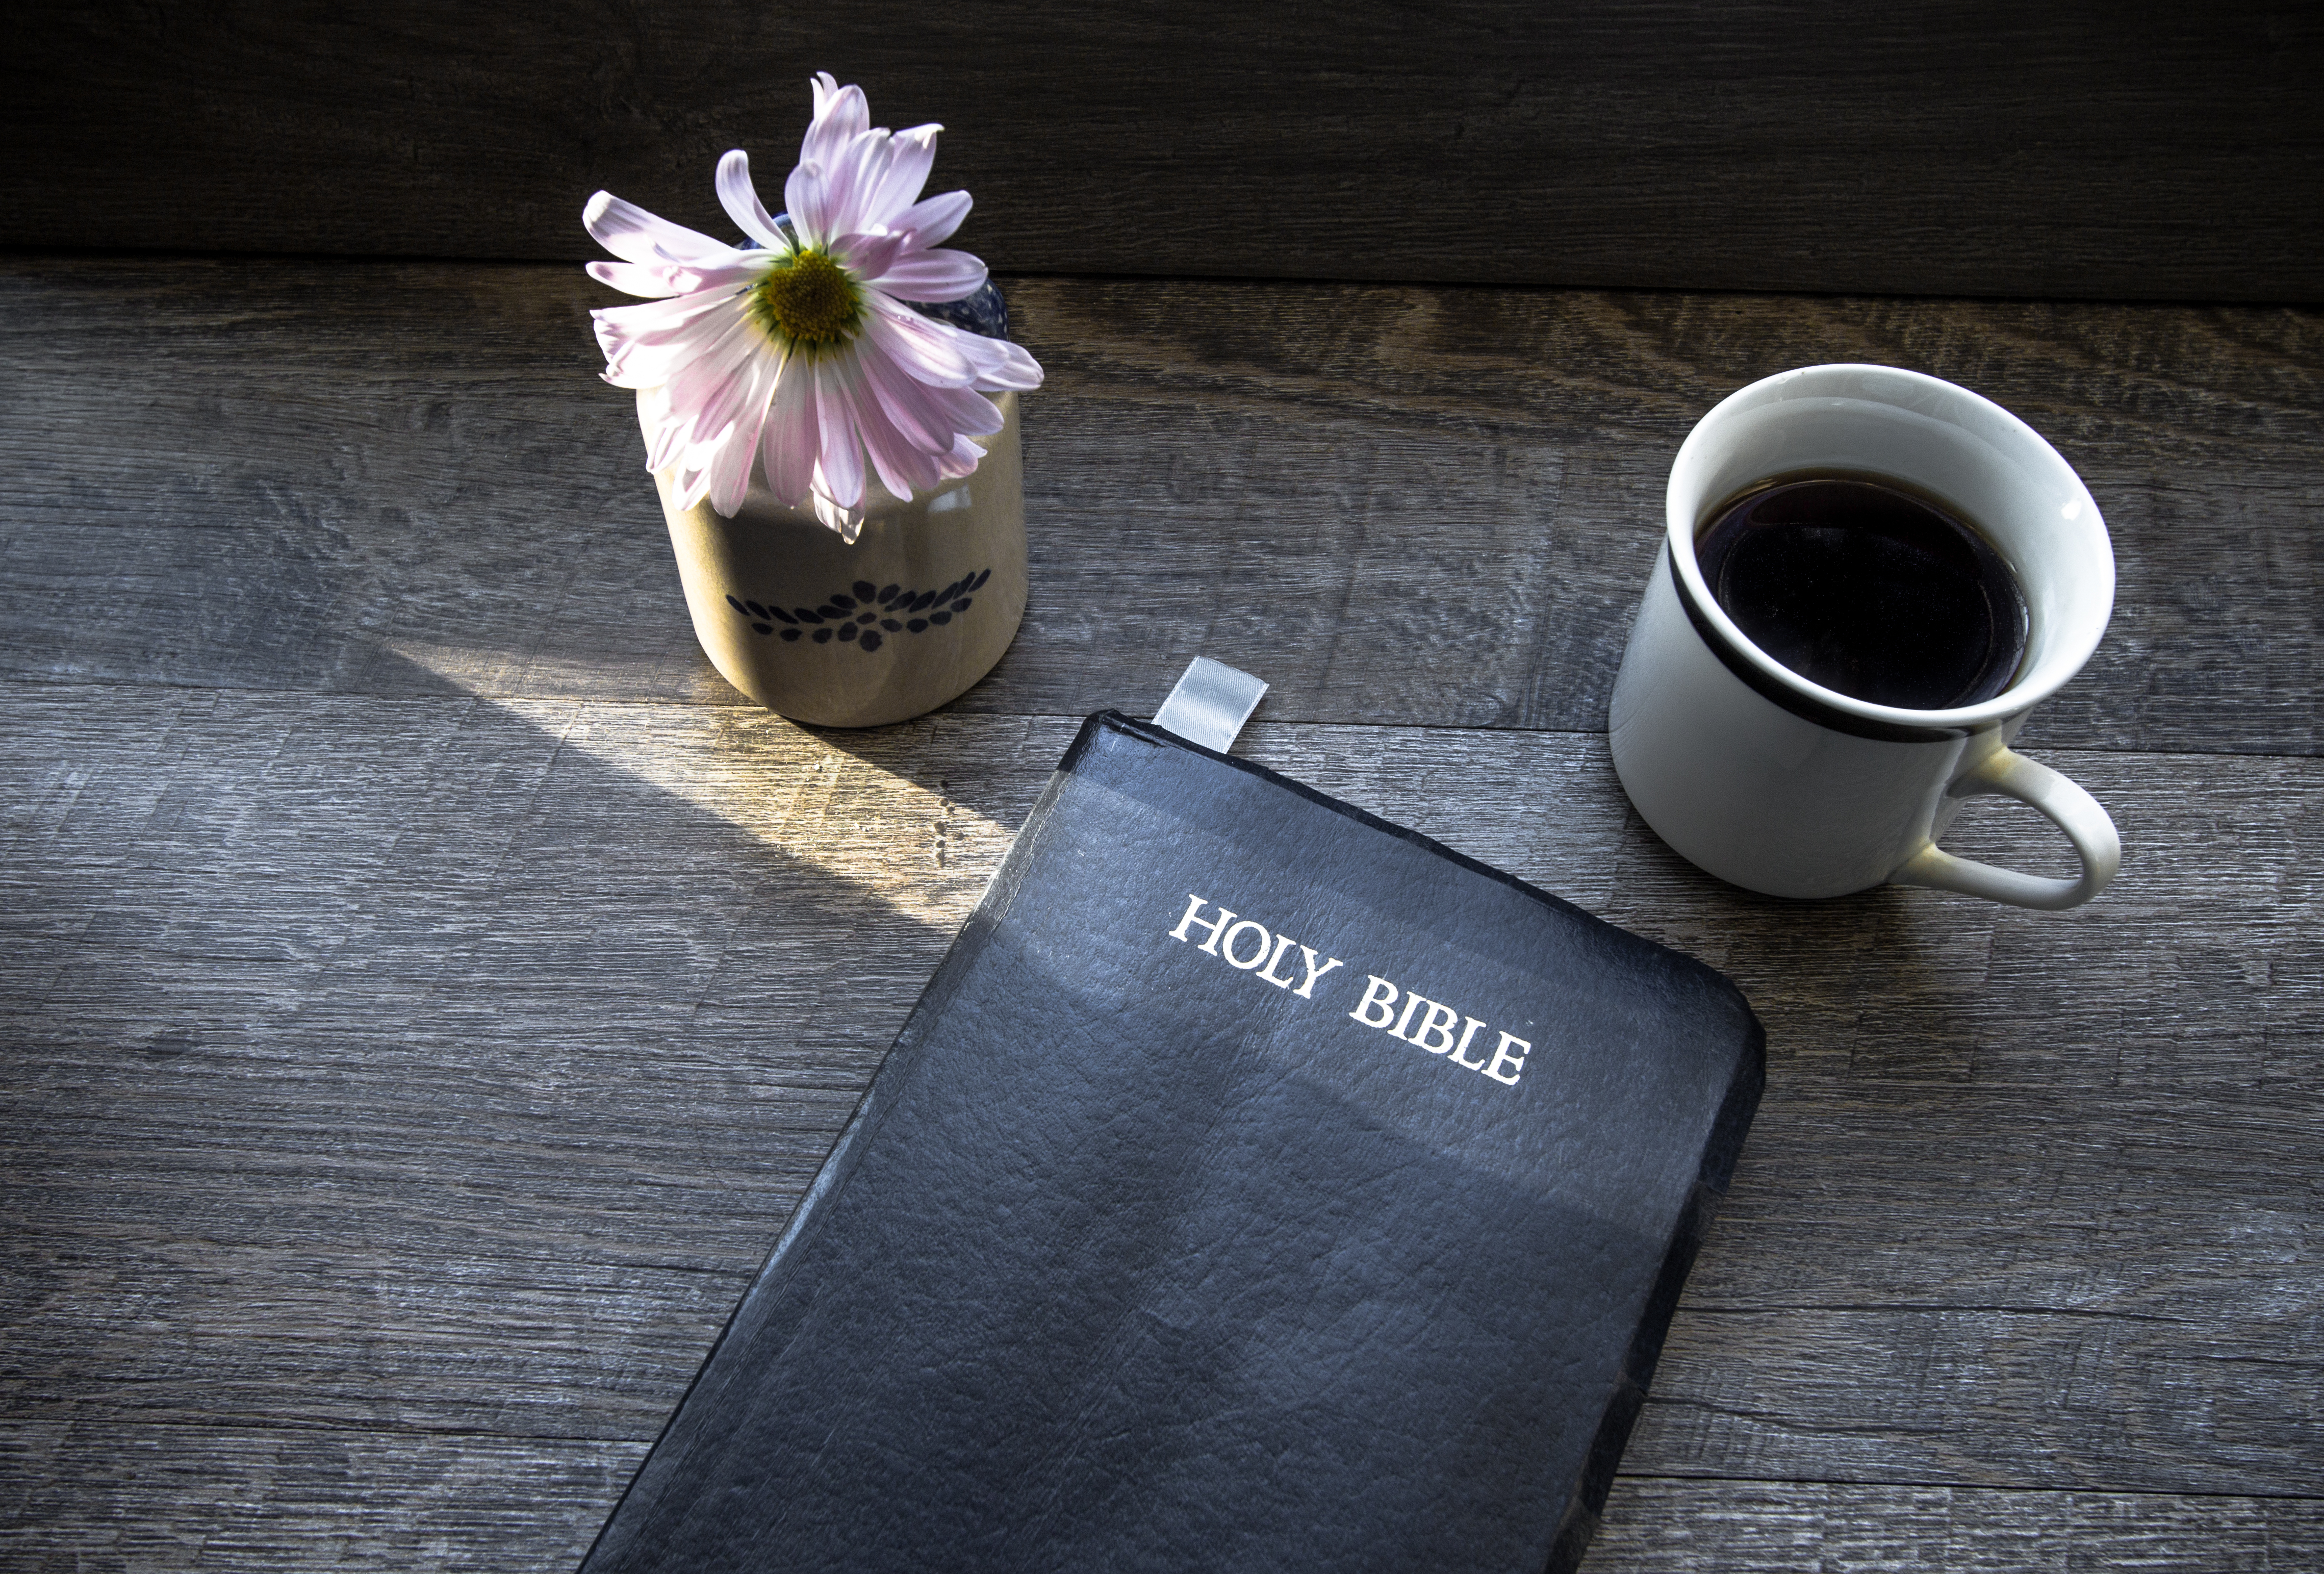 Morning Coffee With Bible Illuminated By Sunlight. Cup of coffee with Christian Bible illuminated by